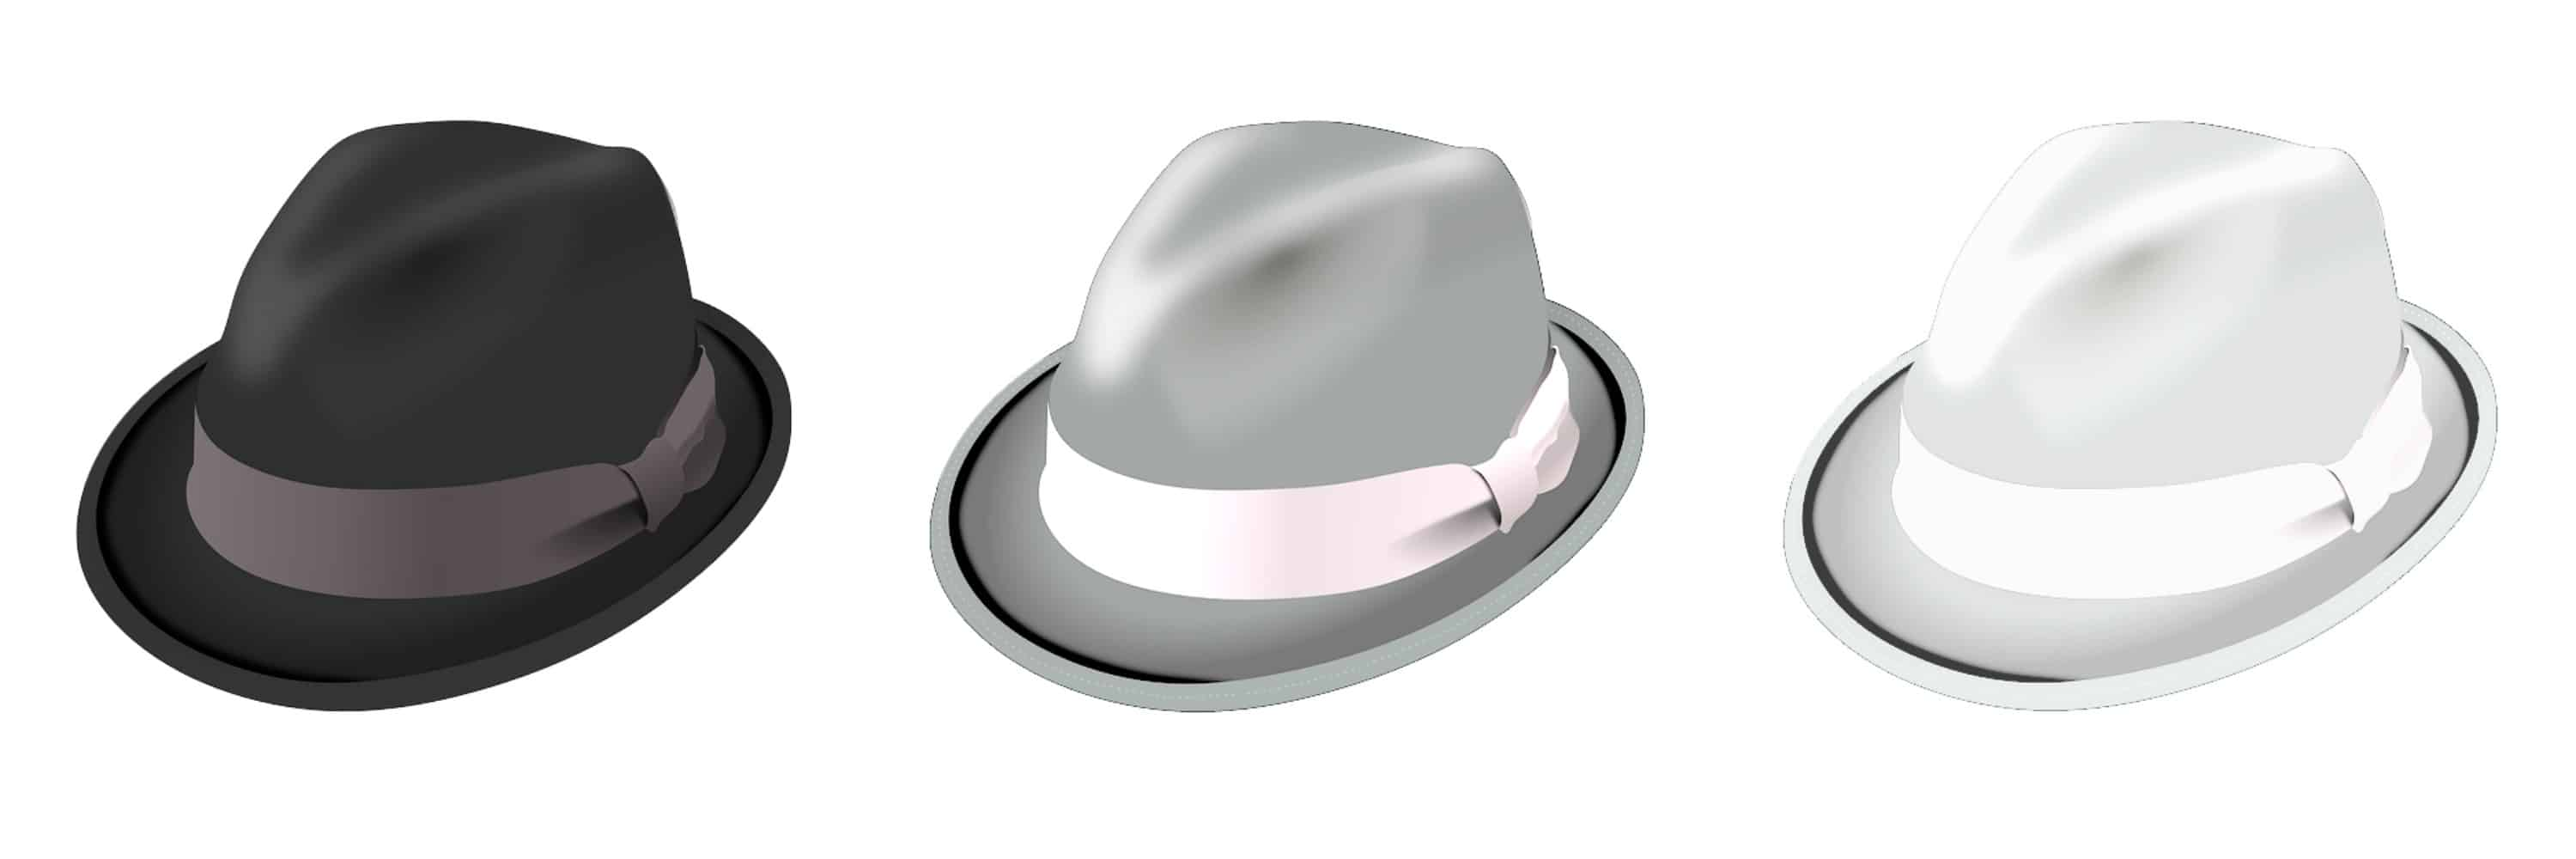 Black Hat SEO Gray Hat SEO White Hat SEO Social Media Maven Stephanie Nelson SBN Marketing